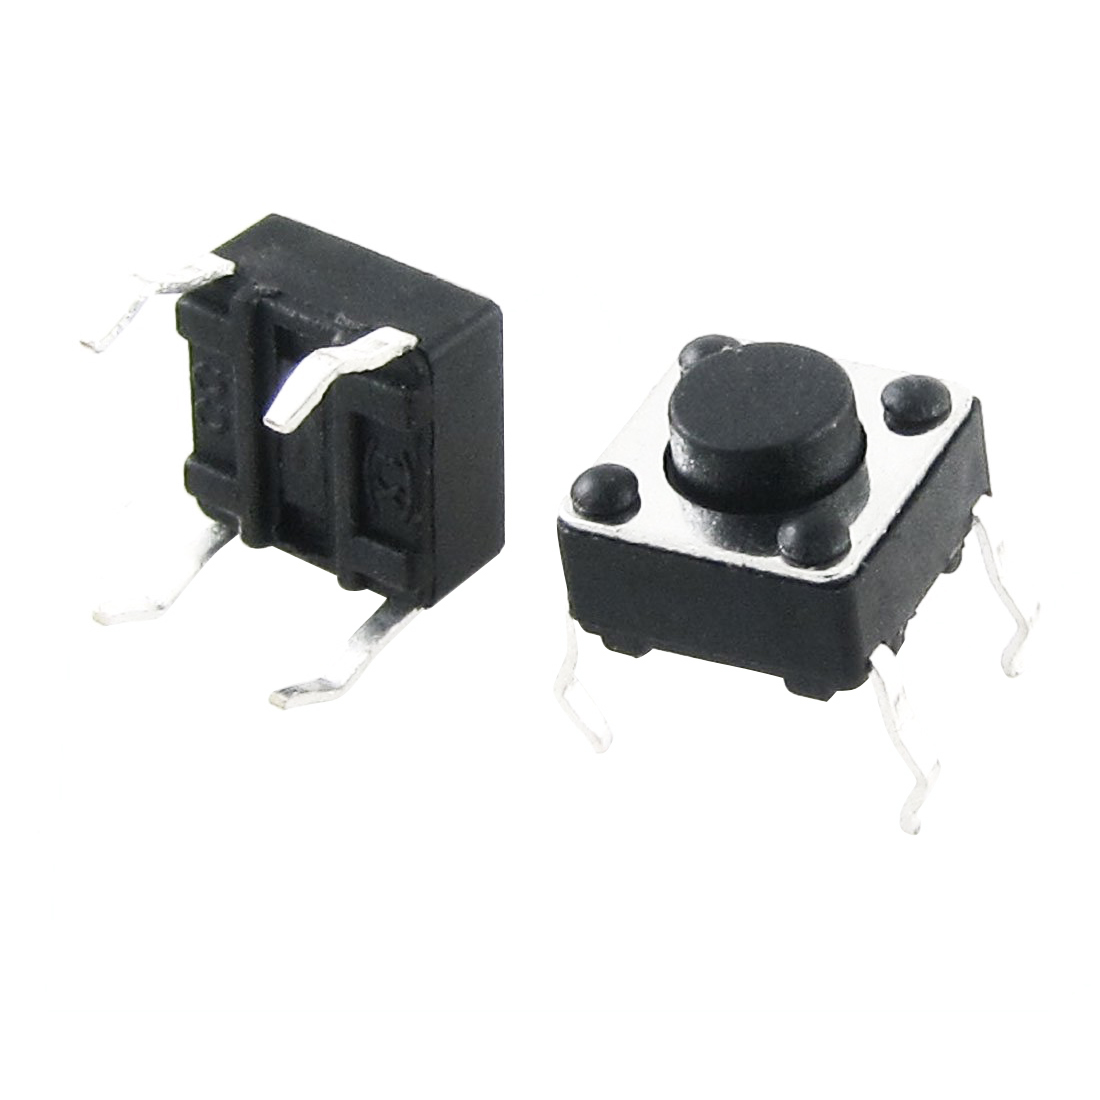 Apprehensive Jfbl Hot 50pcs 6x6x4.3mm Momentary Tactile Tact Switch 4 Pin Dip Through-hole Lights & Lighting Switches